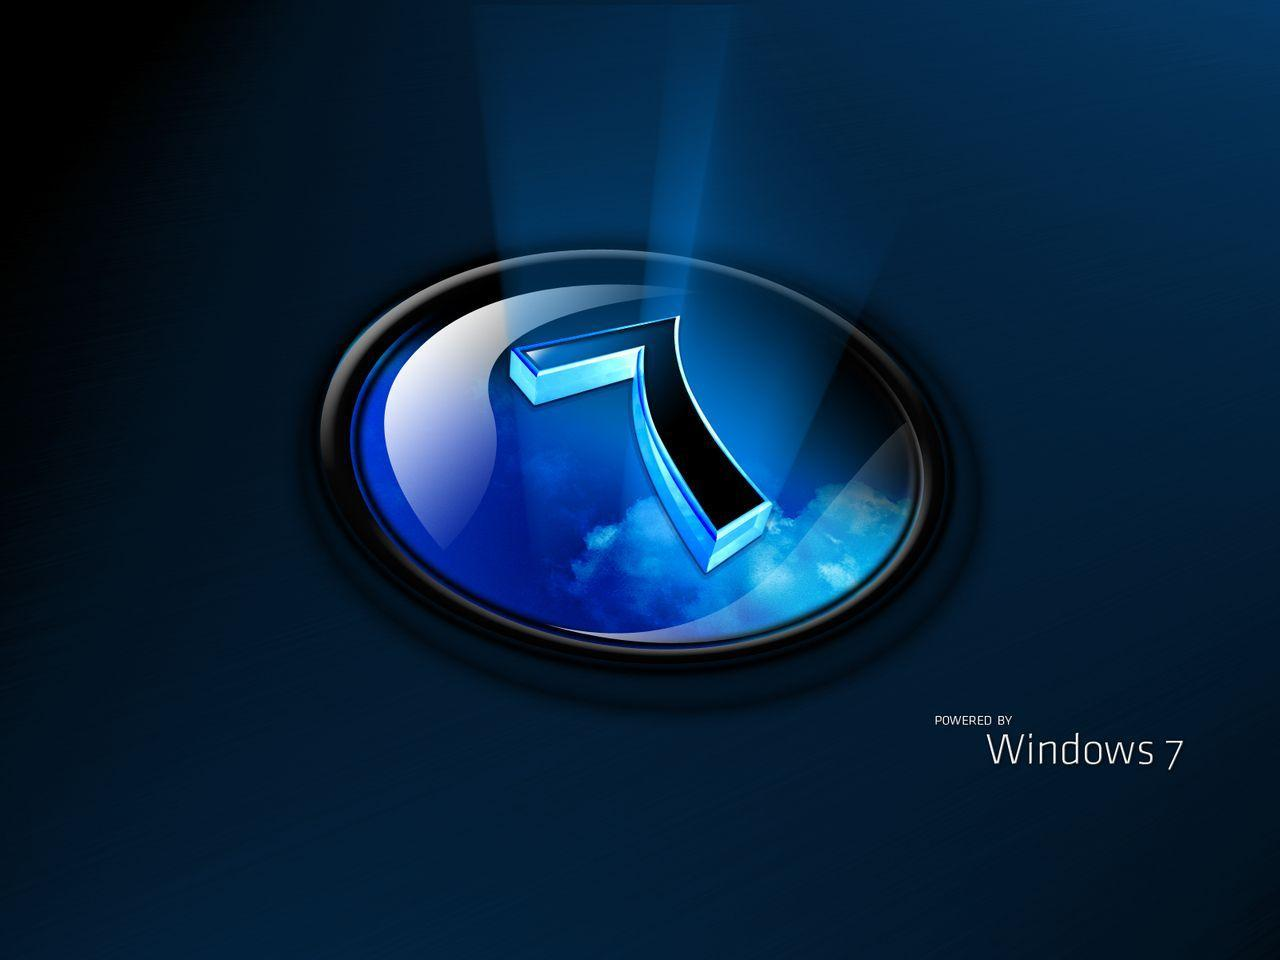 Windows 7 Hd 4 Wallpapers and Backgrounds